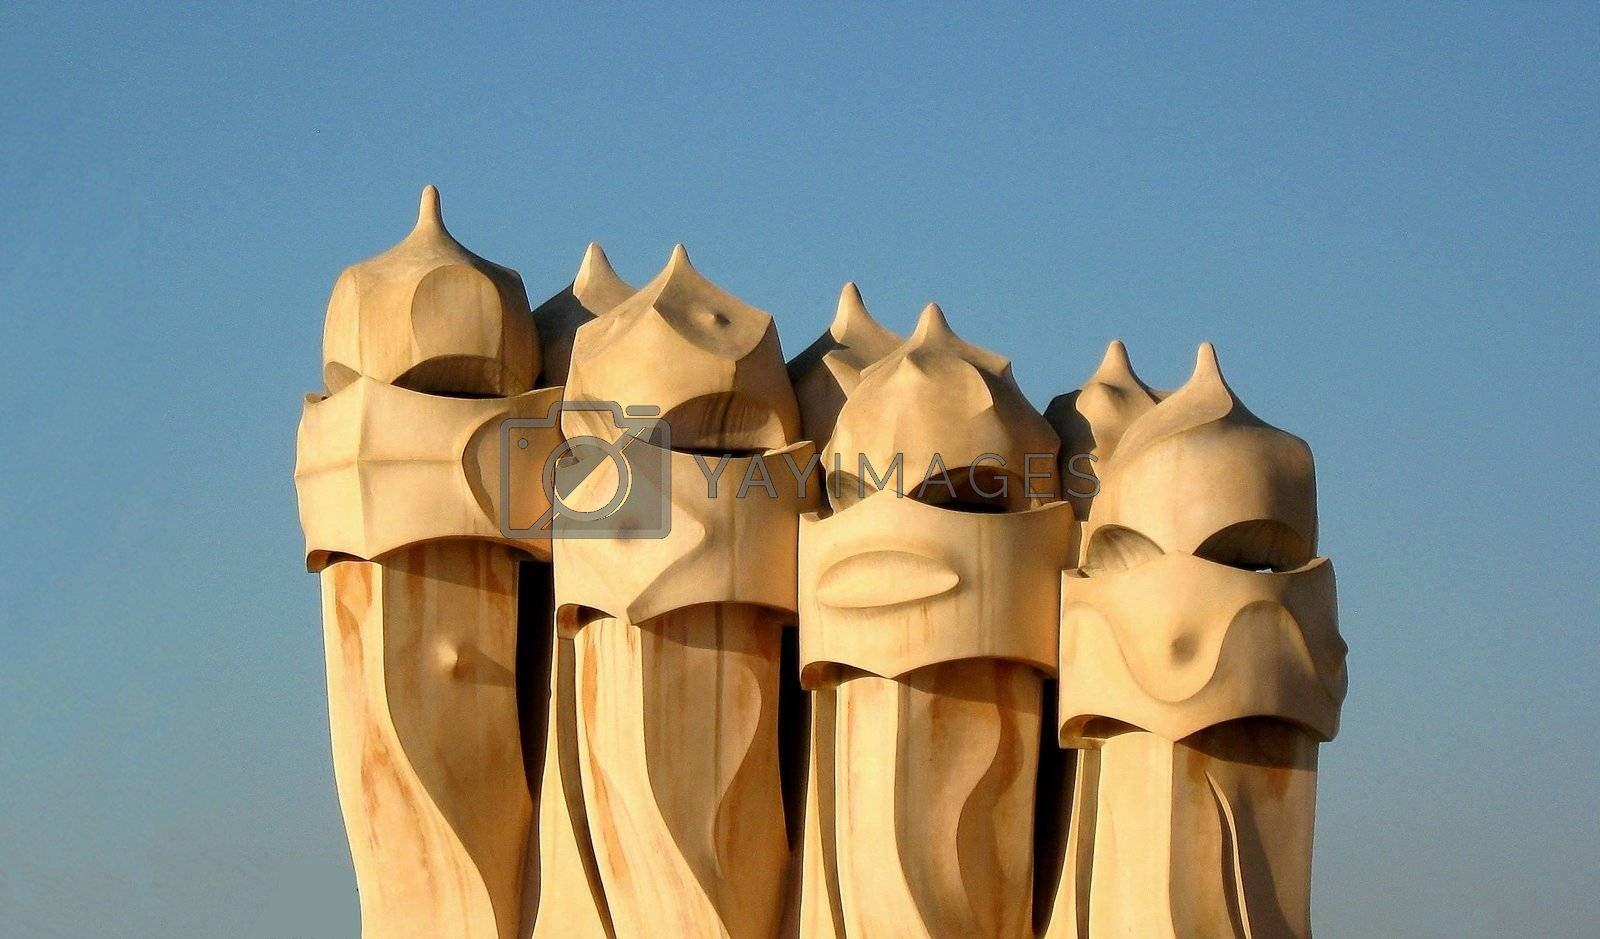 Details of chimneys created by Gaudi in Barcelona